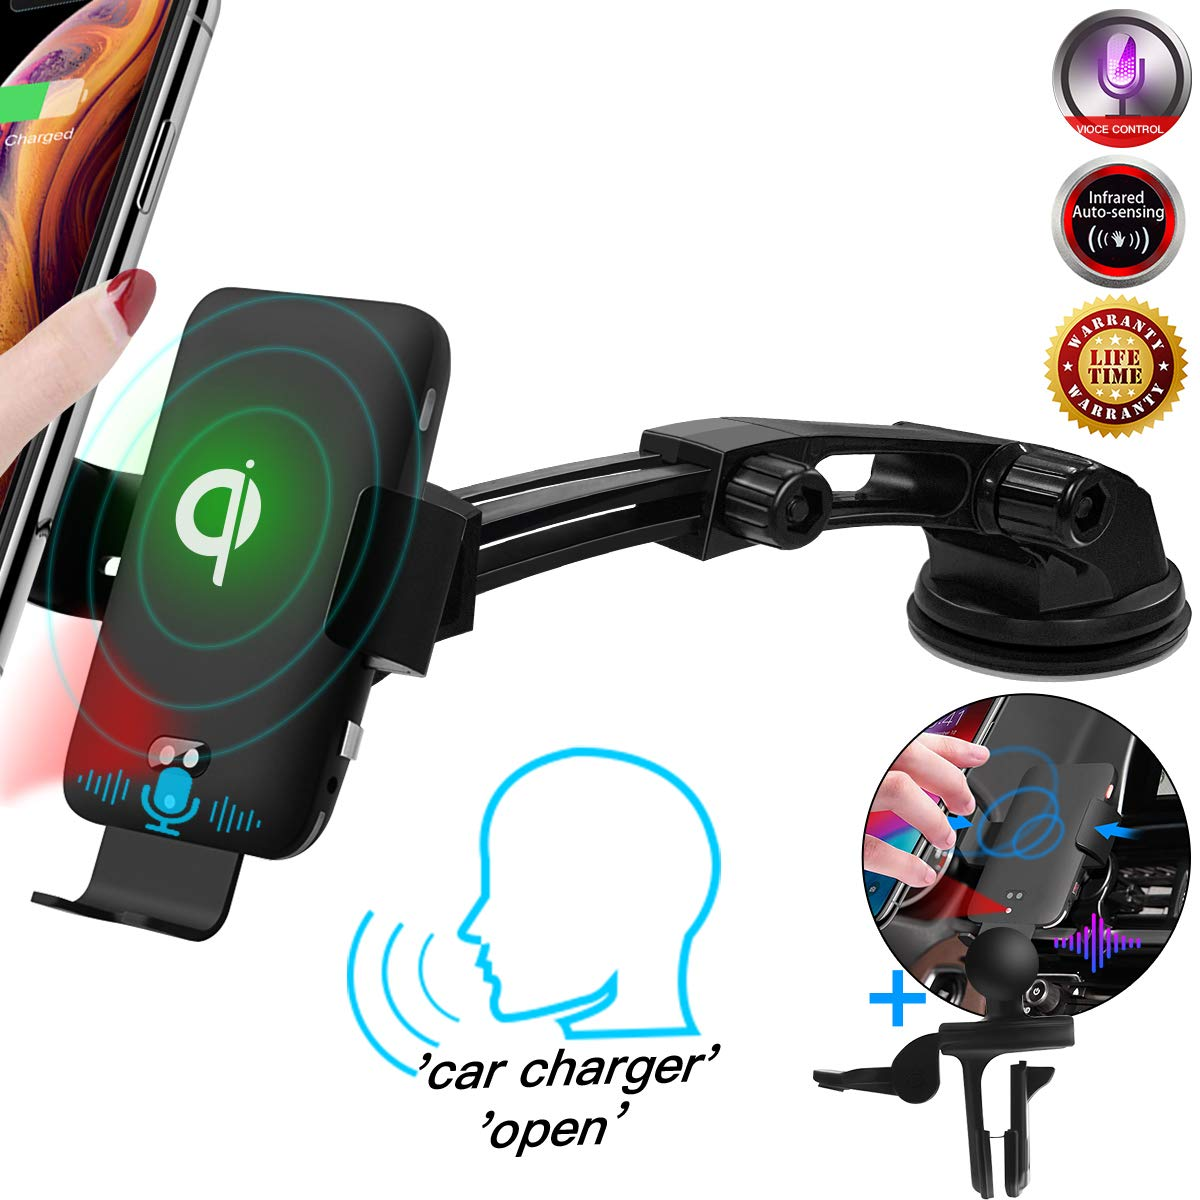 Qi Wireless Car Charger,10W Fast Charging[Auto Clamping][Voice Control]Phone Holder for Car, Dashboard Air Vent Wireless Car Phone Mount for iPhone XR/XS Max/Samsung S10 Plus/S10e,All QI-Enabled Phone